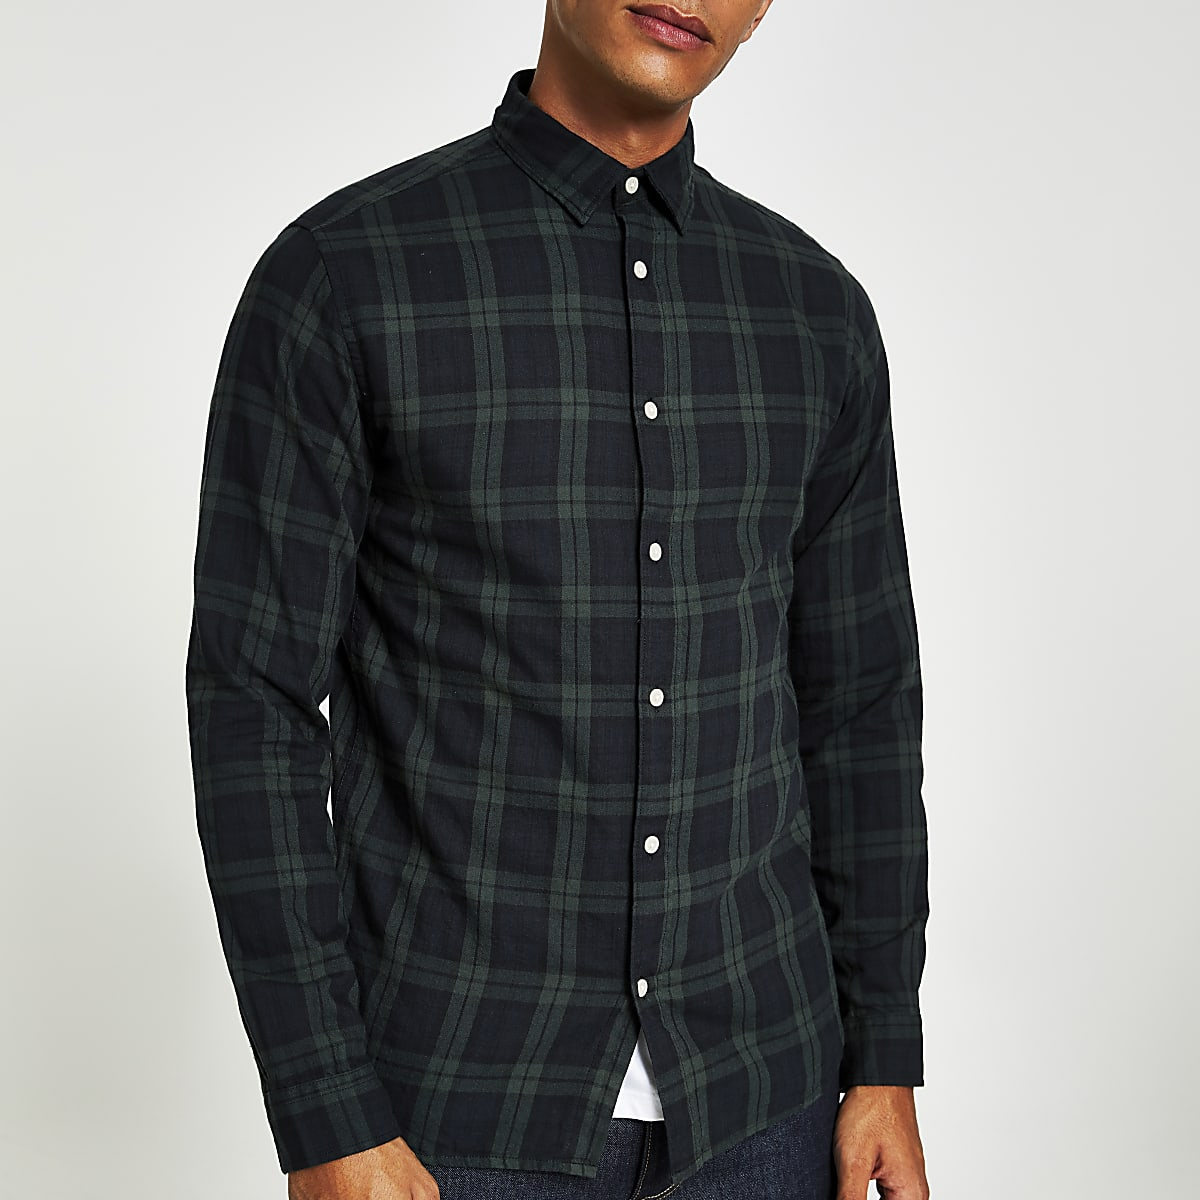 Selected Homme dark green check shirt